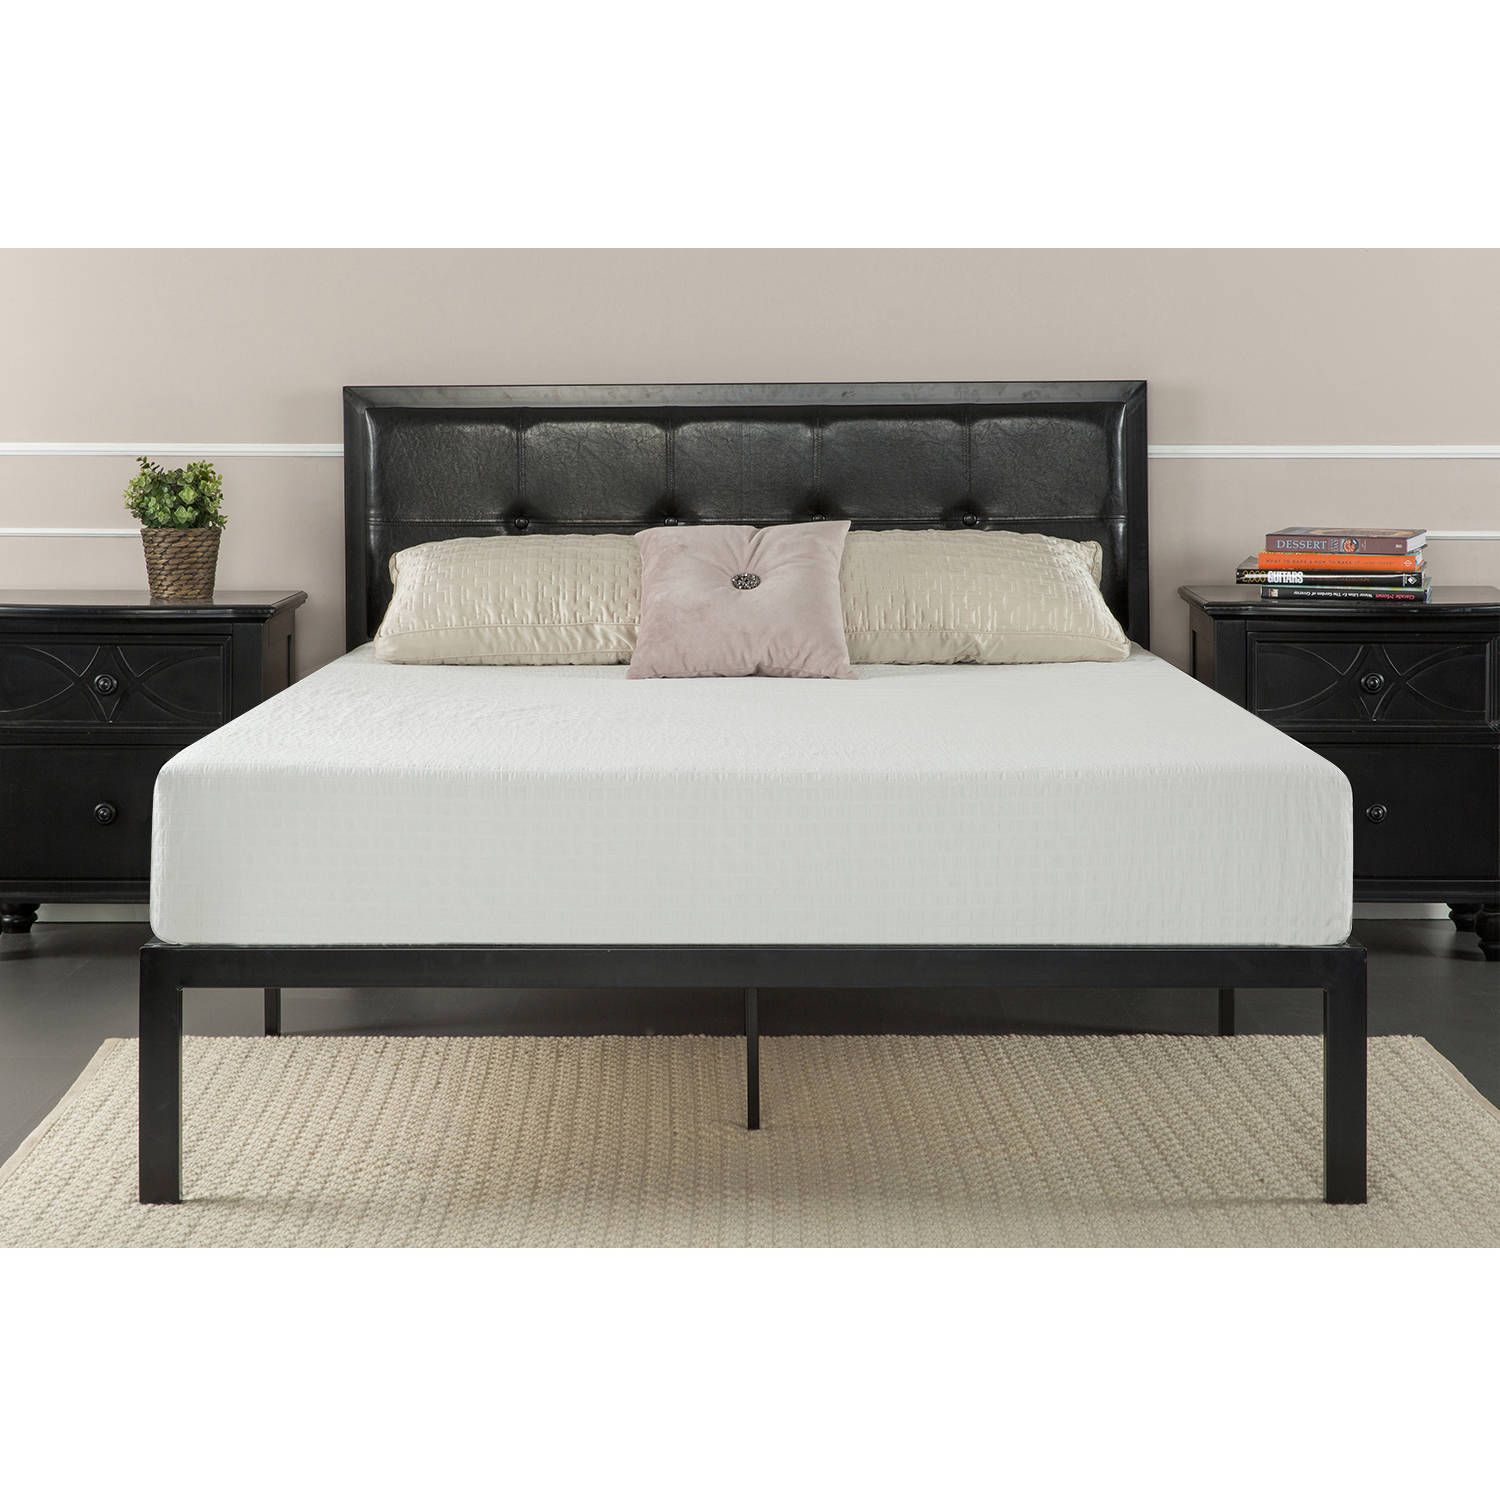 Zinus Faux Leather Classic Platform Bed with Steel Support Slats    Walmart com. Zinus Faux Leather Classic Platform Bed with Steel Support Slats